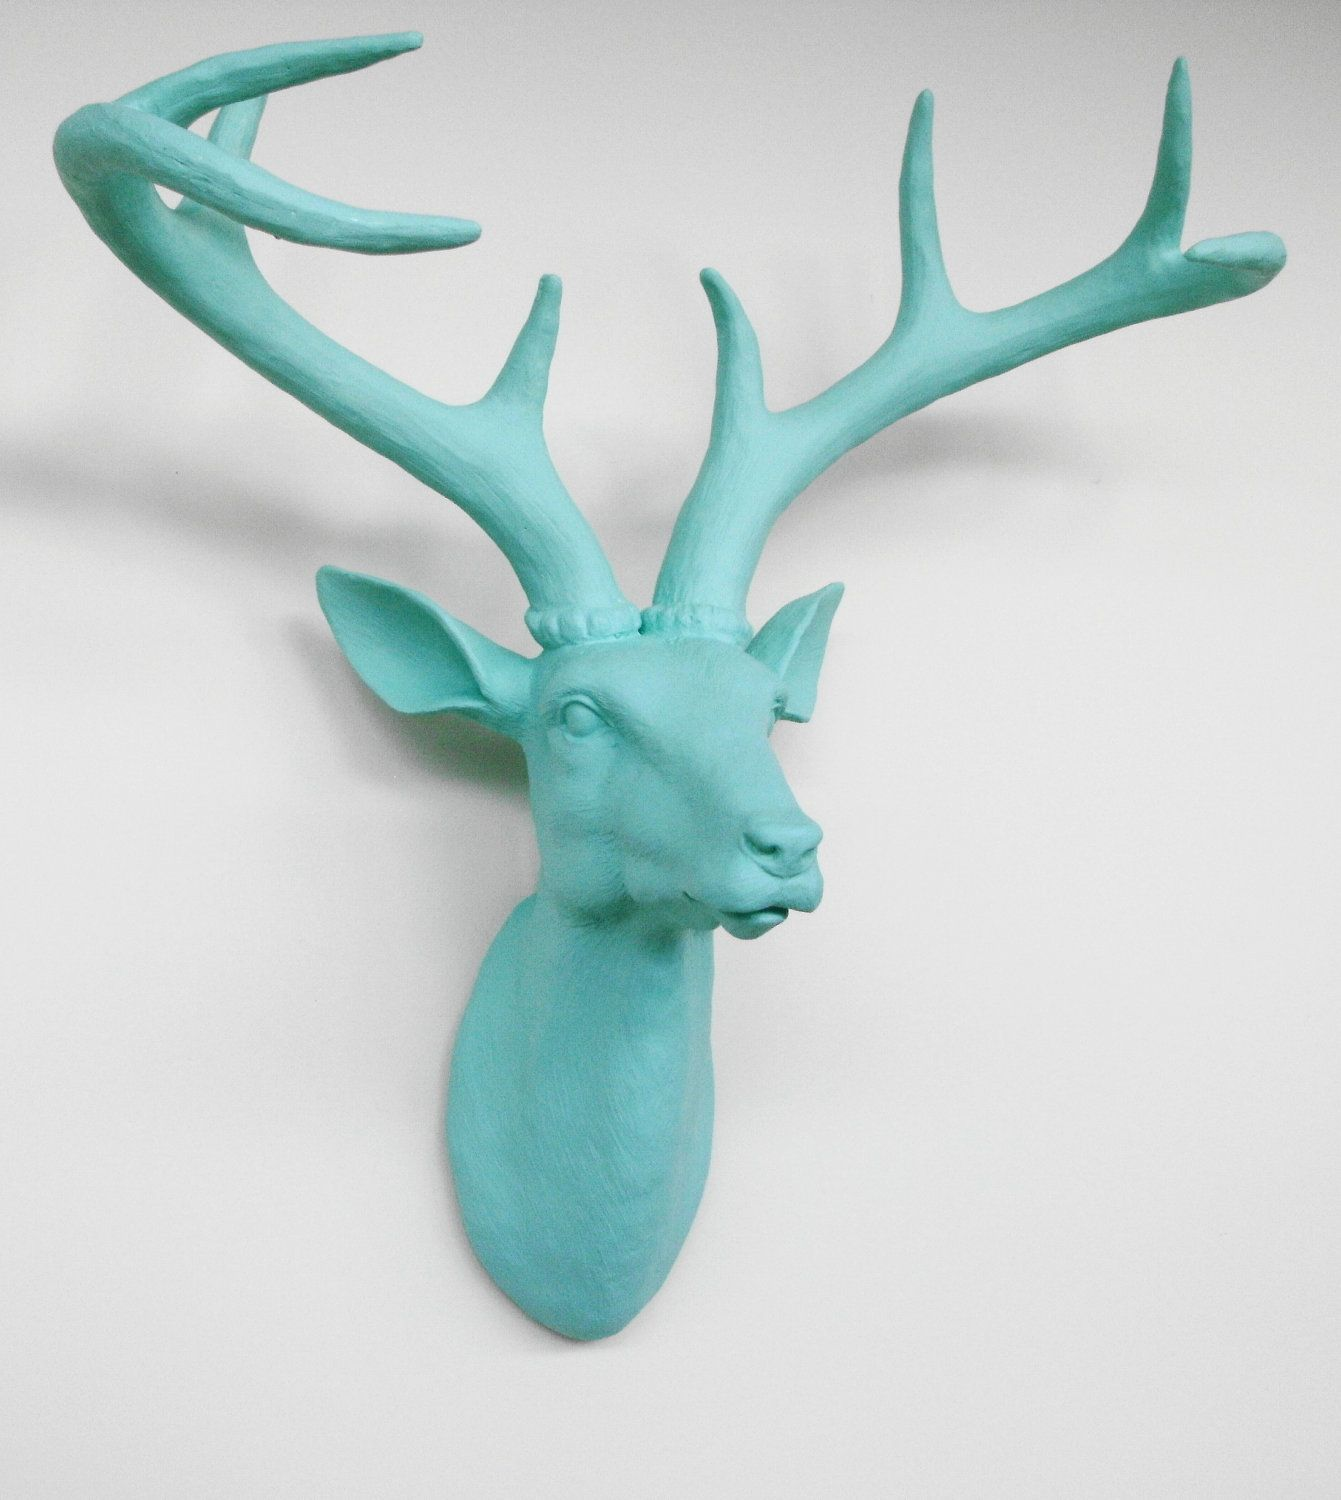 Capri Blue Deer Head Stag Head Faux Deer Head Mounted Deer Head Fake Deer Head 89 00 Via Etsy Deer Head Wall Art Animal Wall Mount Faux Deer